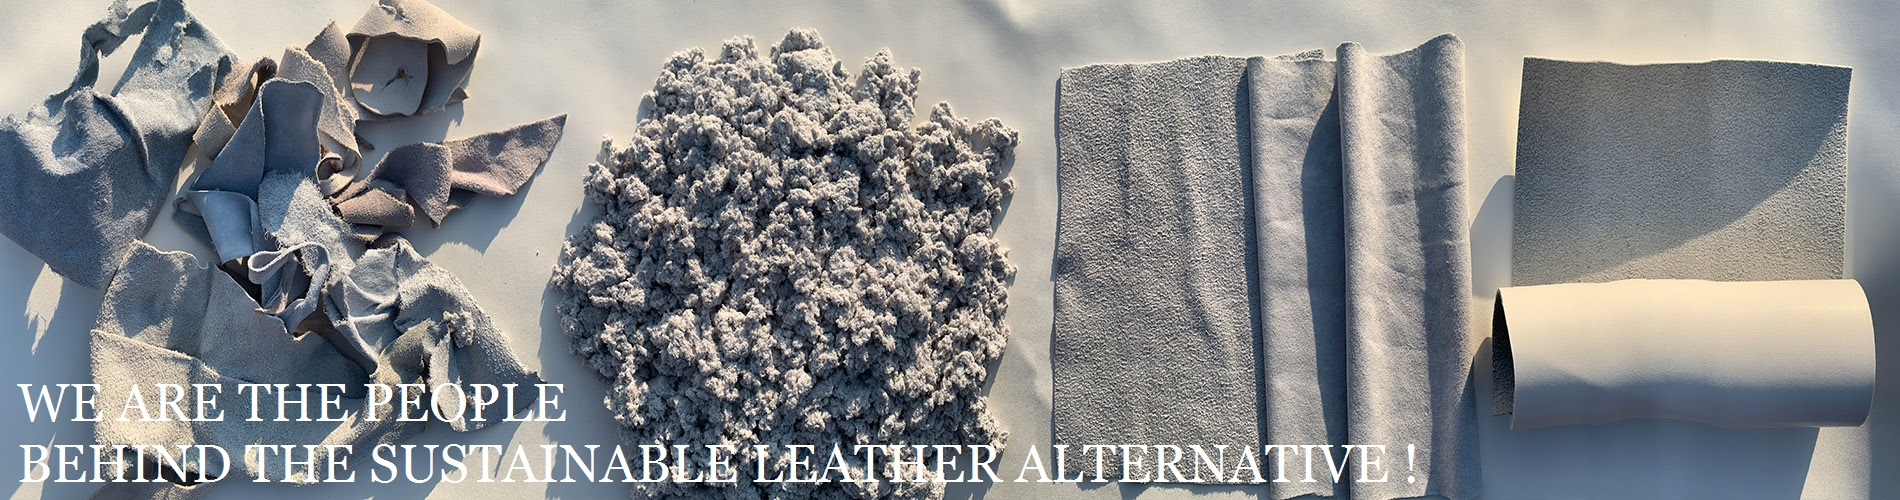 SUSTAINABLE RECYCLABLE LEATHER